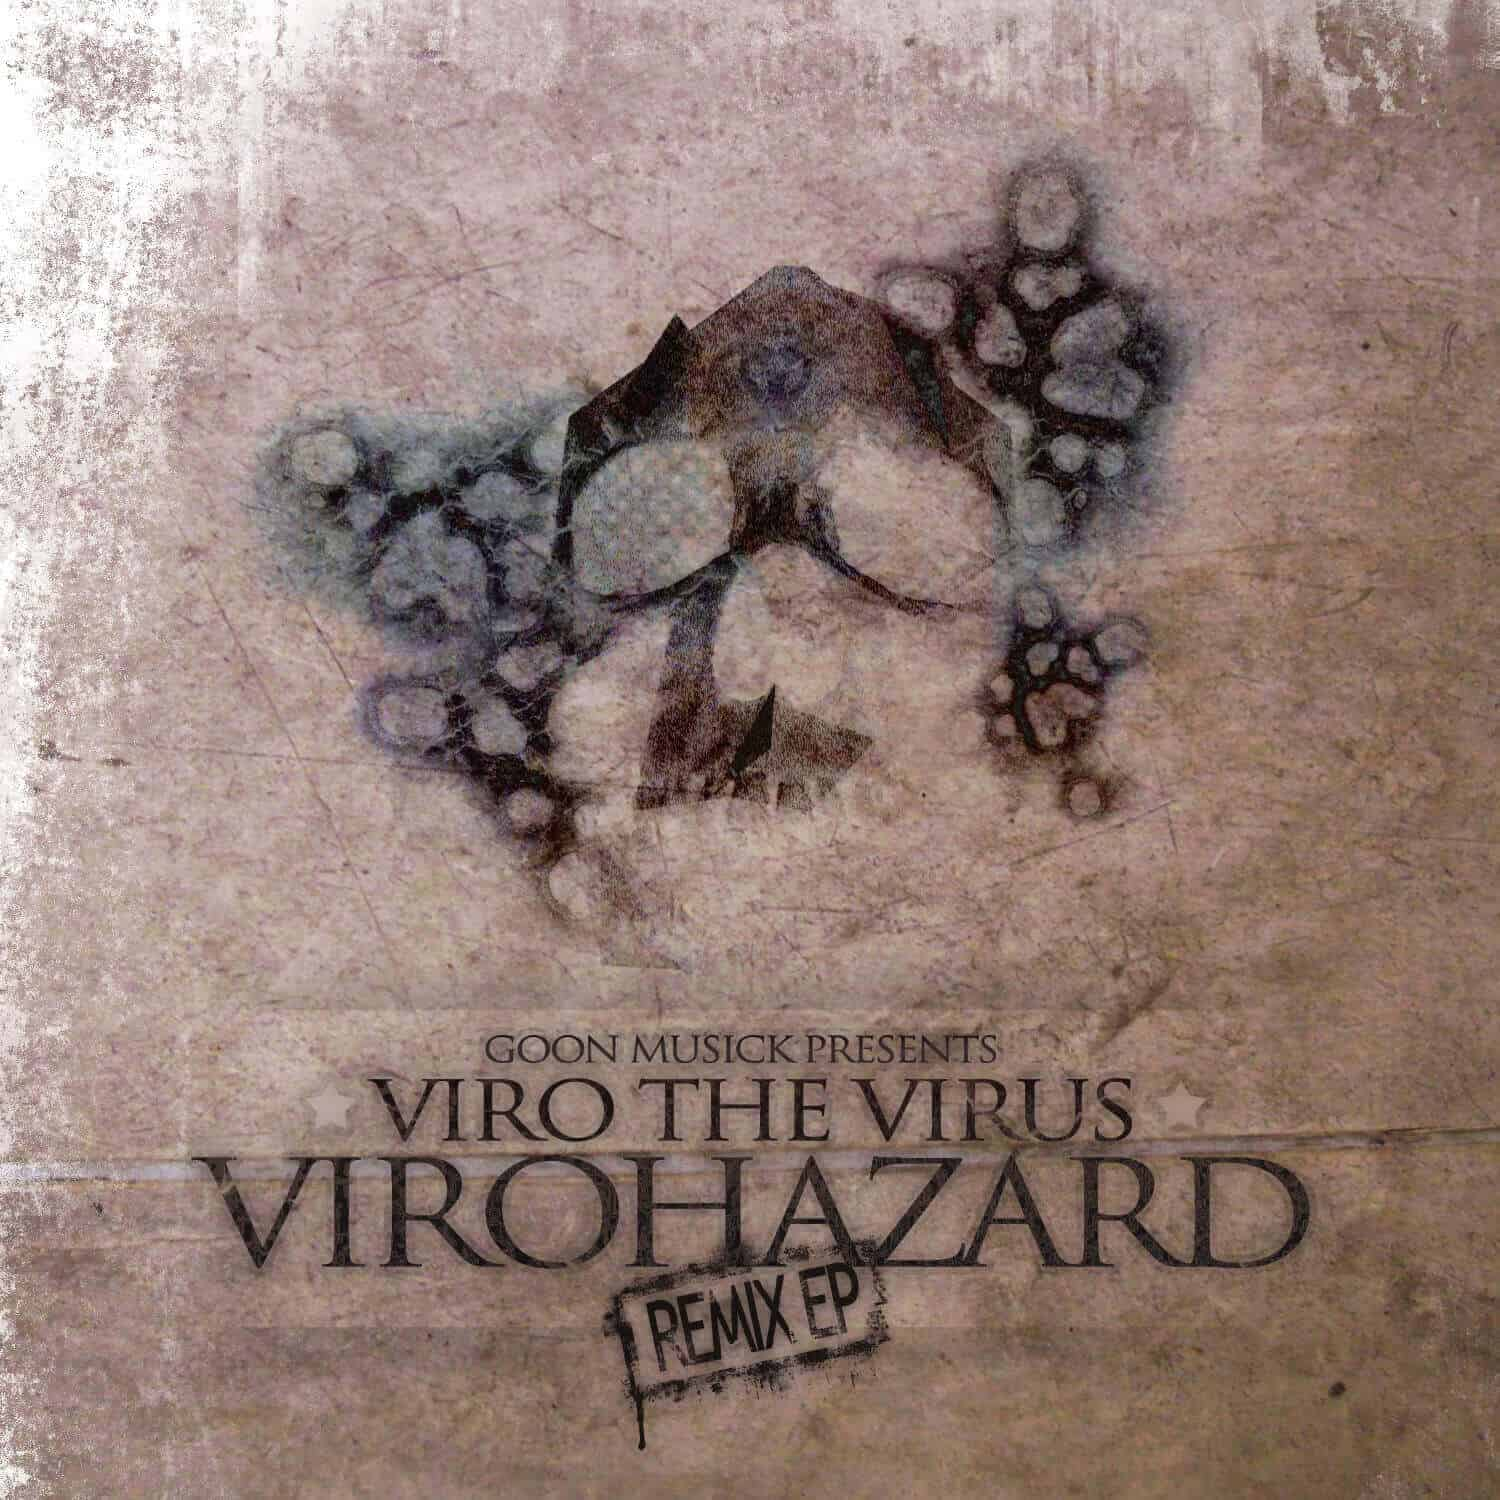 Viro the Virus - Virohazard Cover